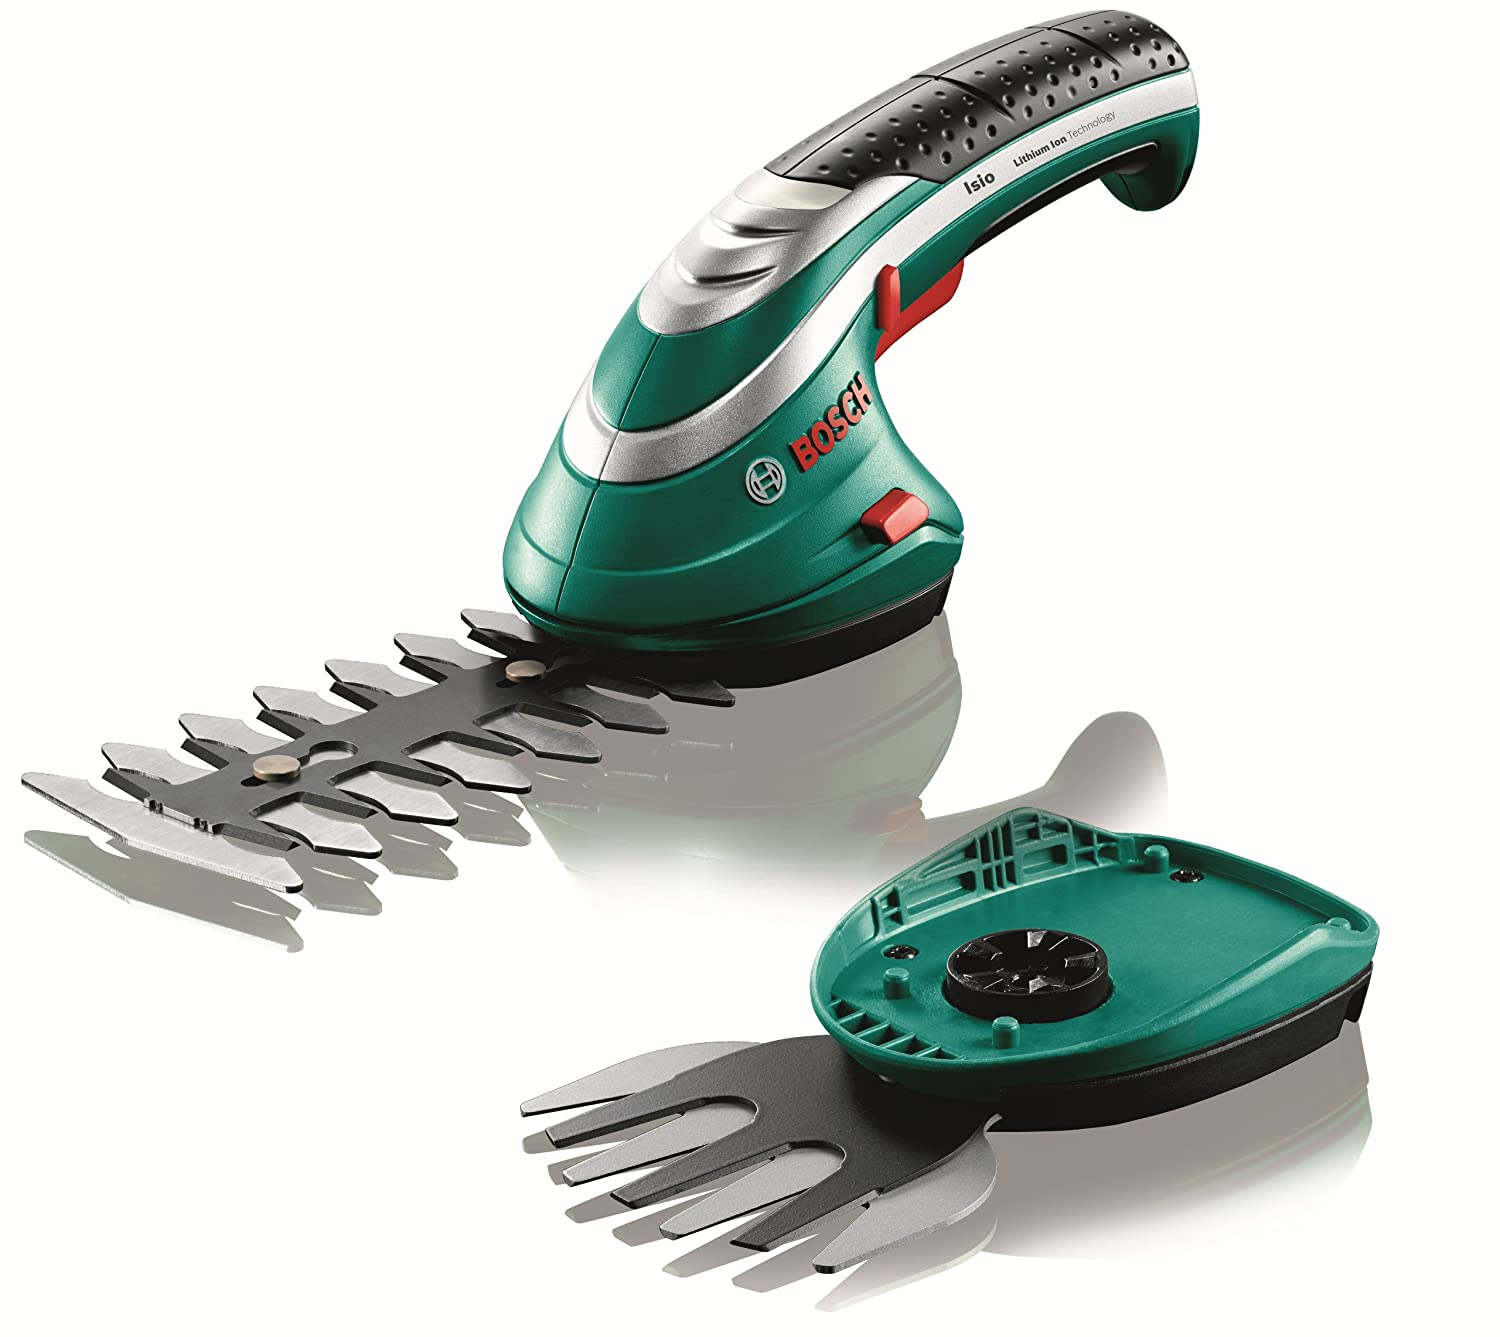 Bosch Cordless Edging and Shrub Shear Isio Set, 3.6 V, 1.5 Ah 600833172